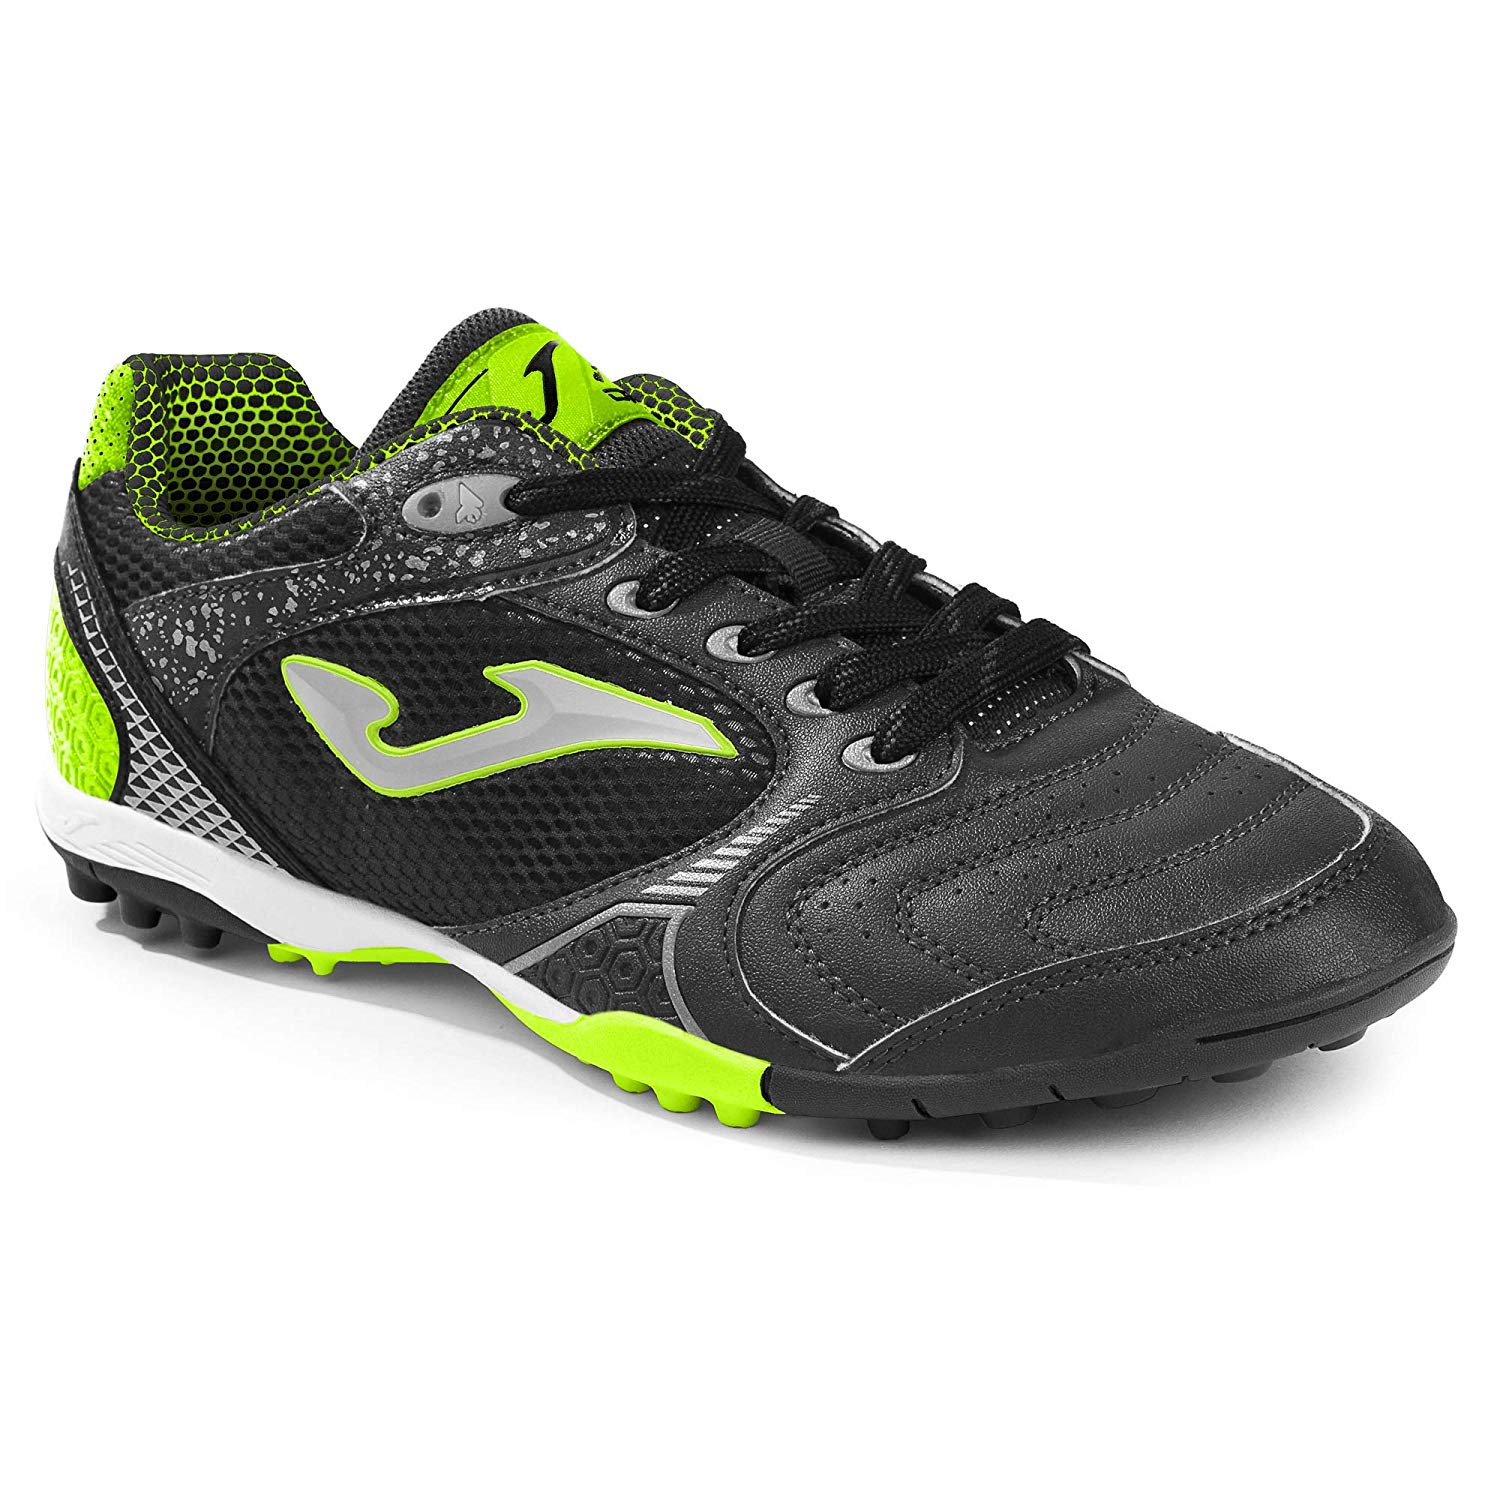 d312e790b097 Get Quotations · Joma Men s Dribbling TF Turf Soccer Shoes